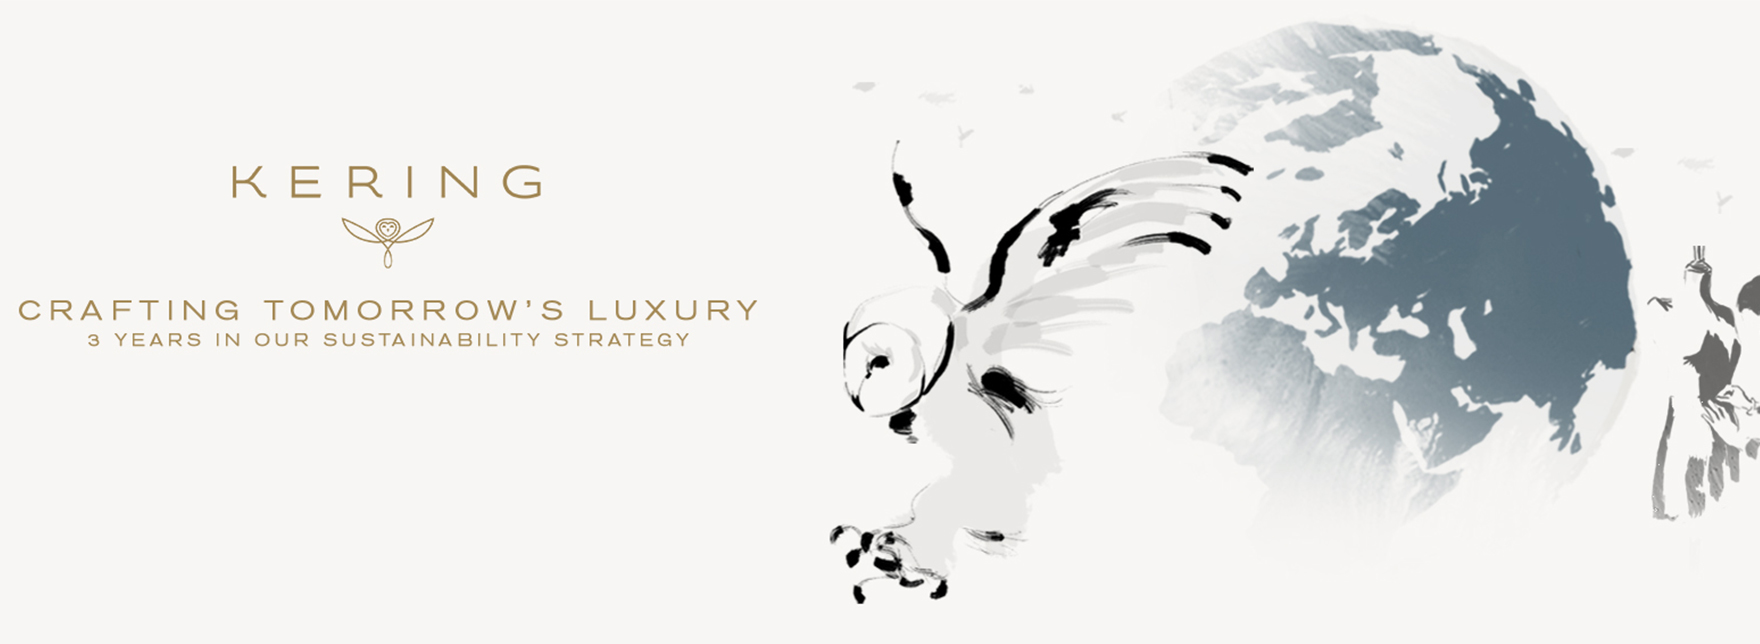 Motion design Crafting tomorrow's Luxury